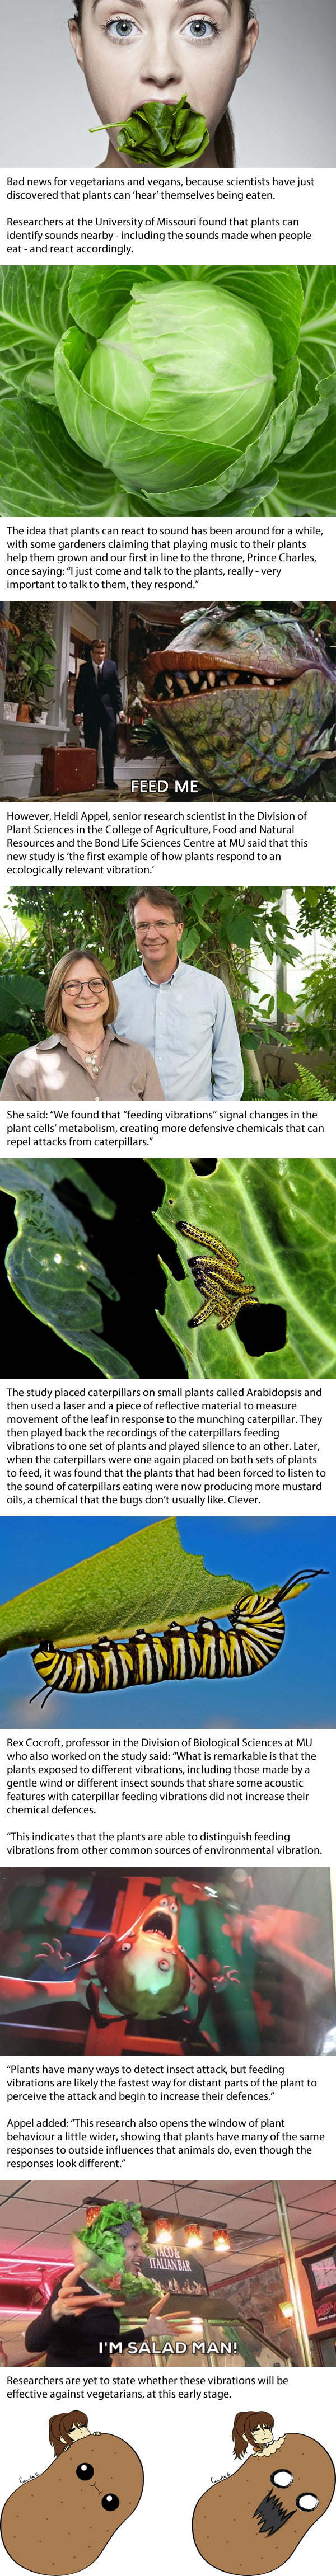 Bad news for vegetarians! Plants can 'hear' themselves being eaten - and become defensive when attacked